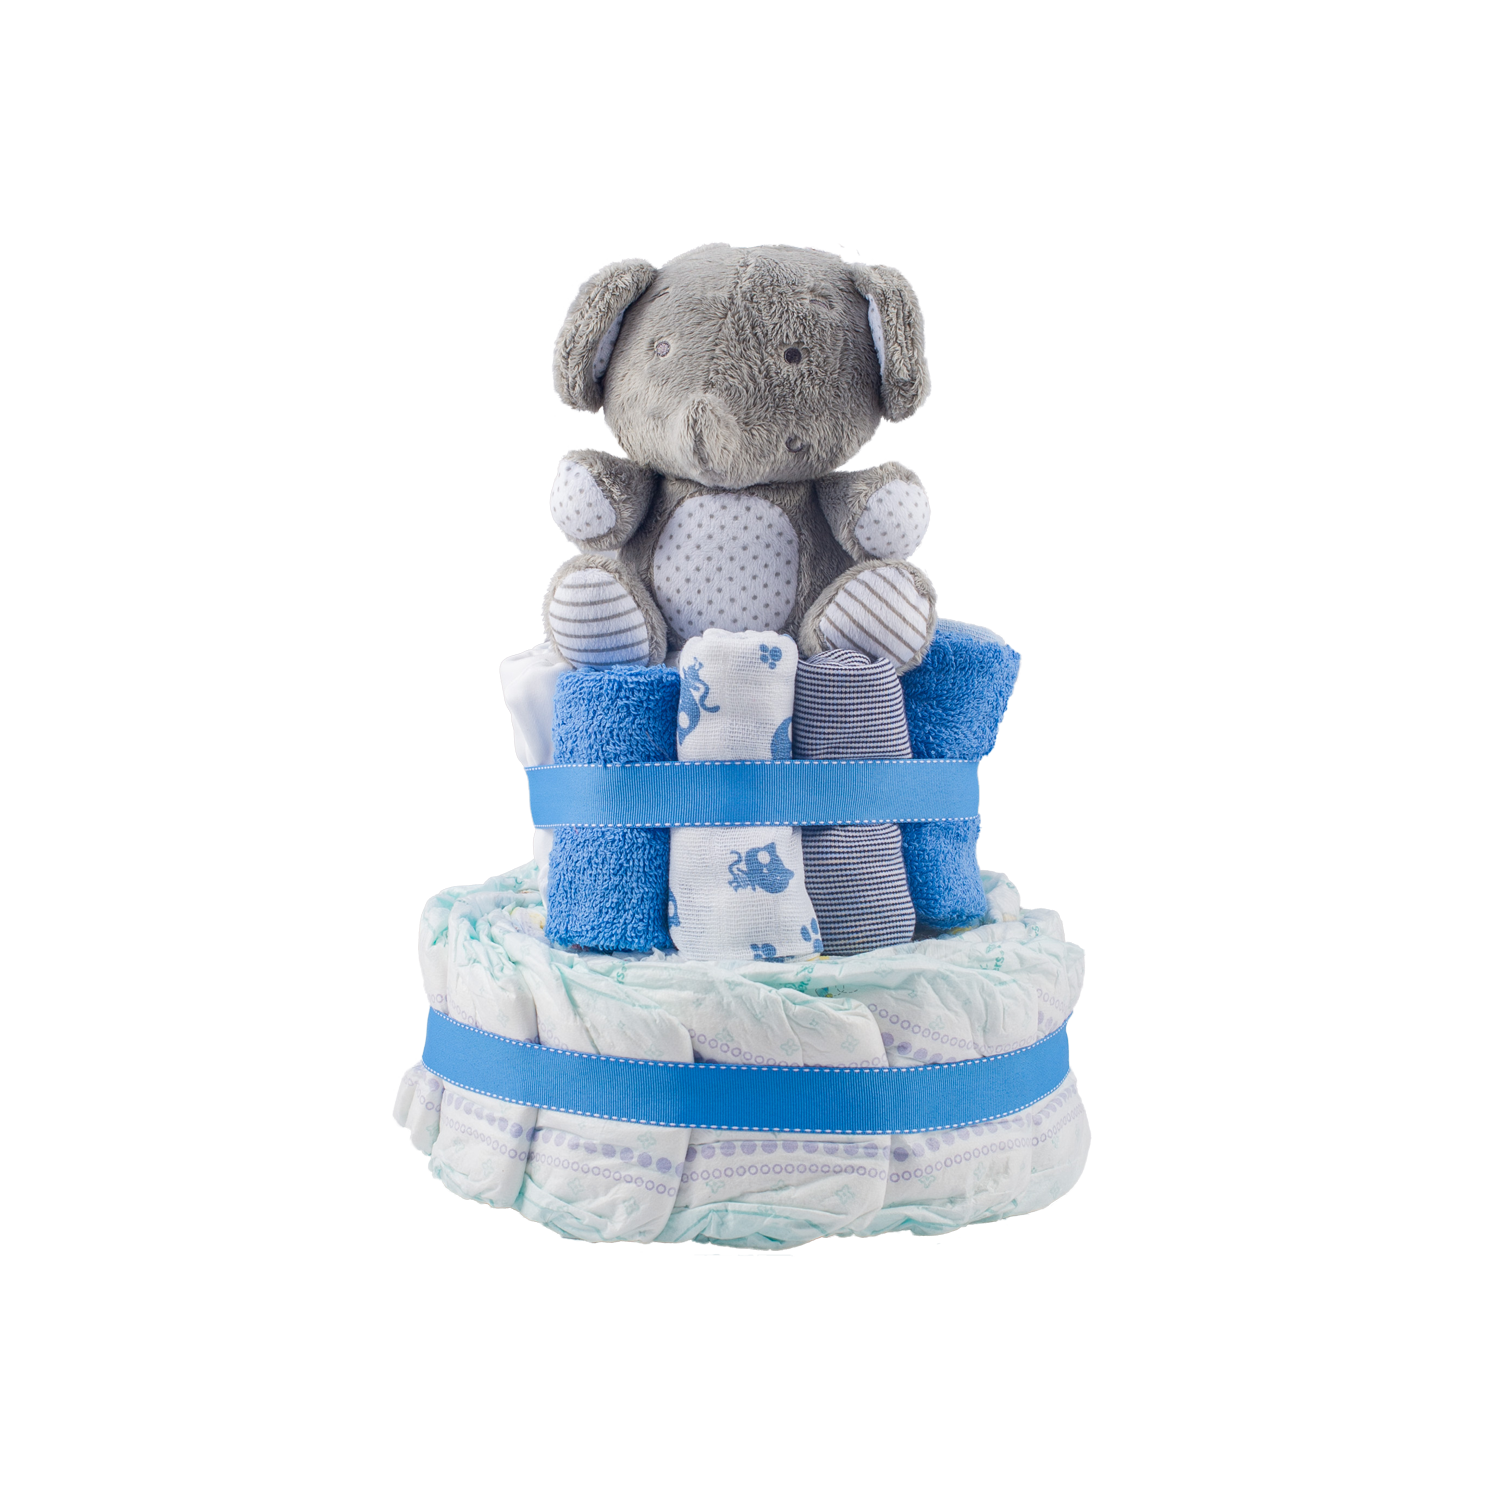 Stylish 2-Tier Blue Nappy Cake